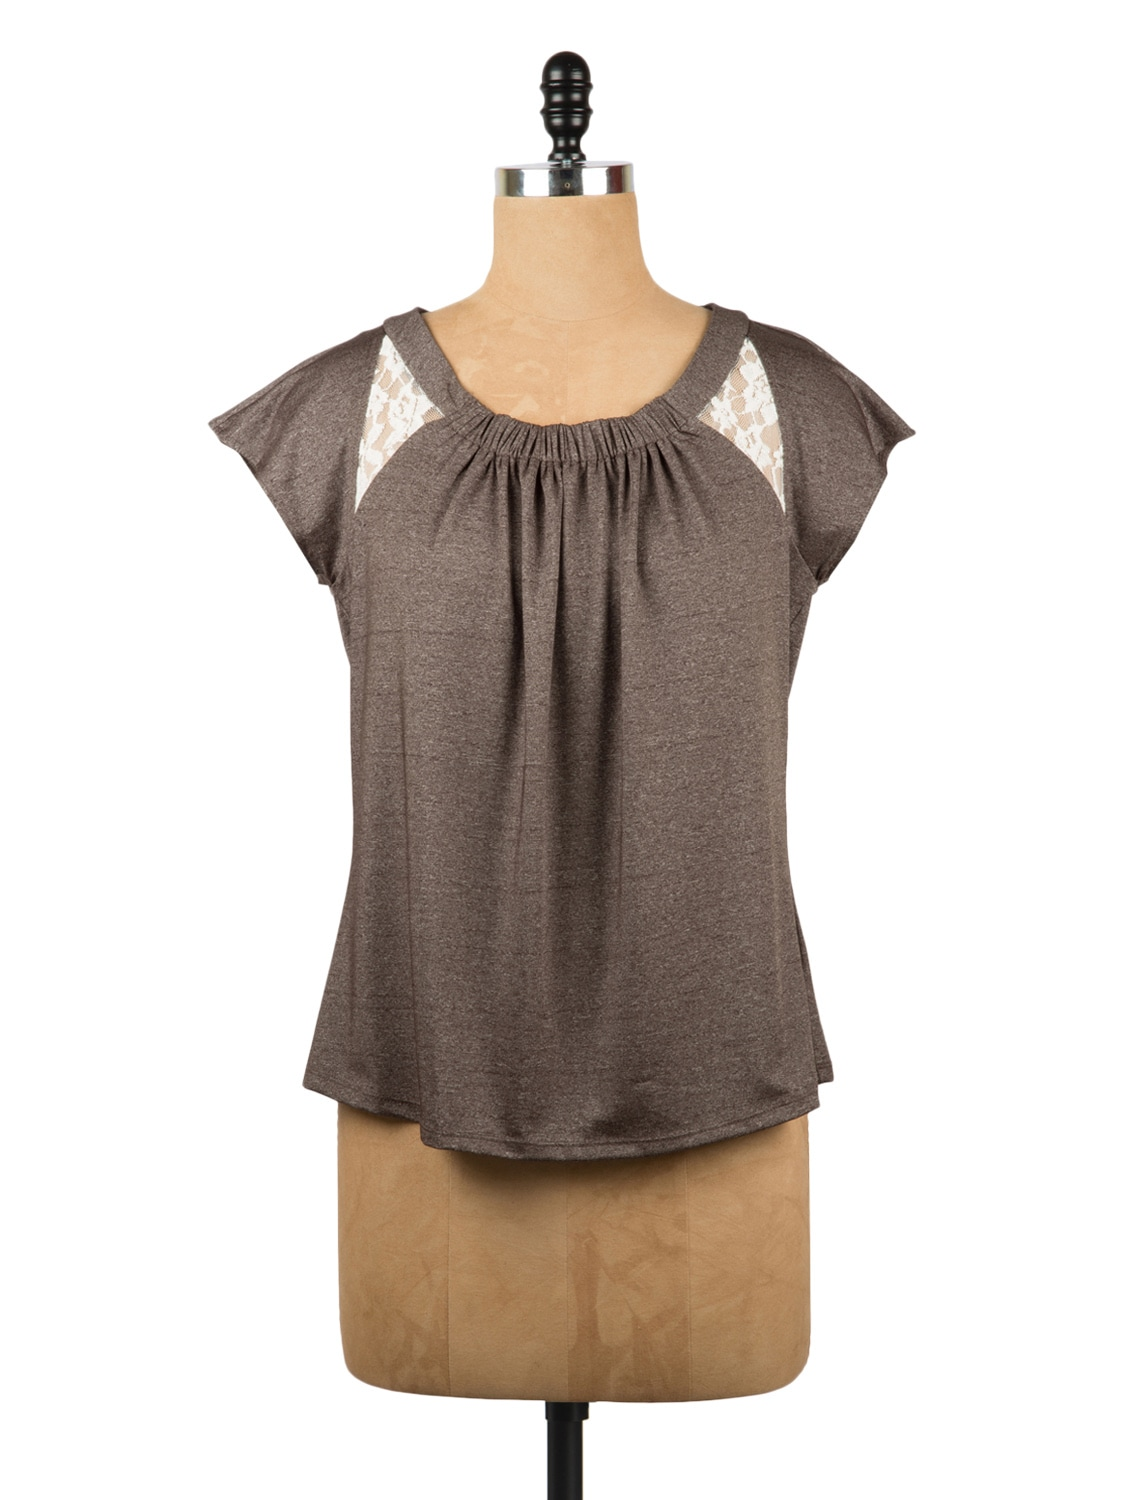 Brown Gathers Top With Lace Inserts - Avirate